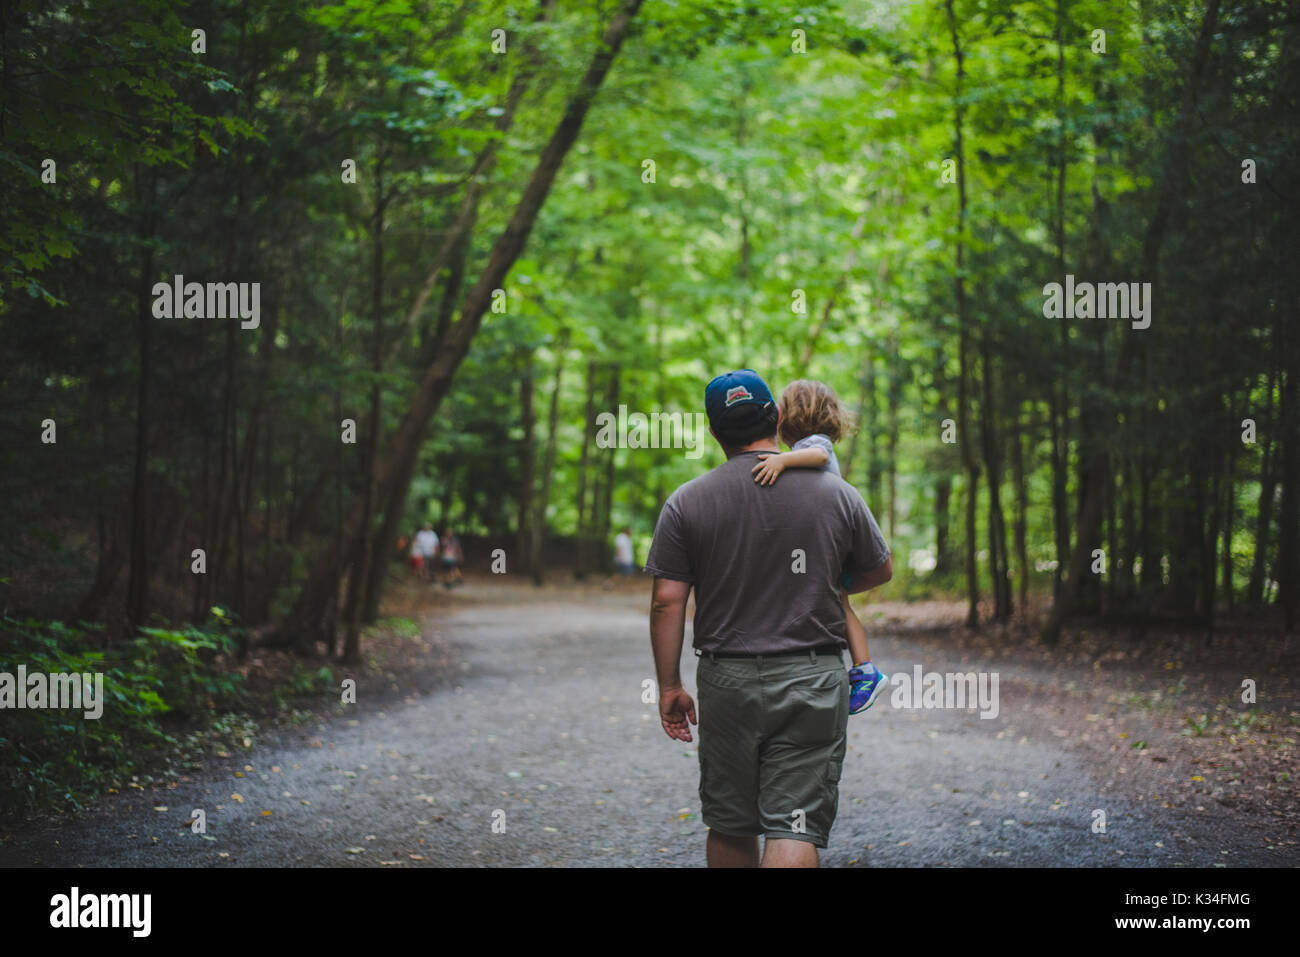 A father carries his daughter along a tree covered trail. - Stock Image